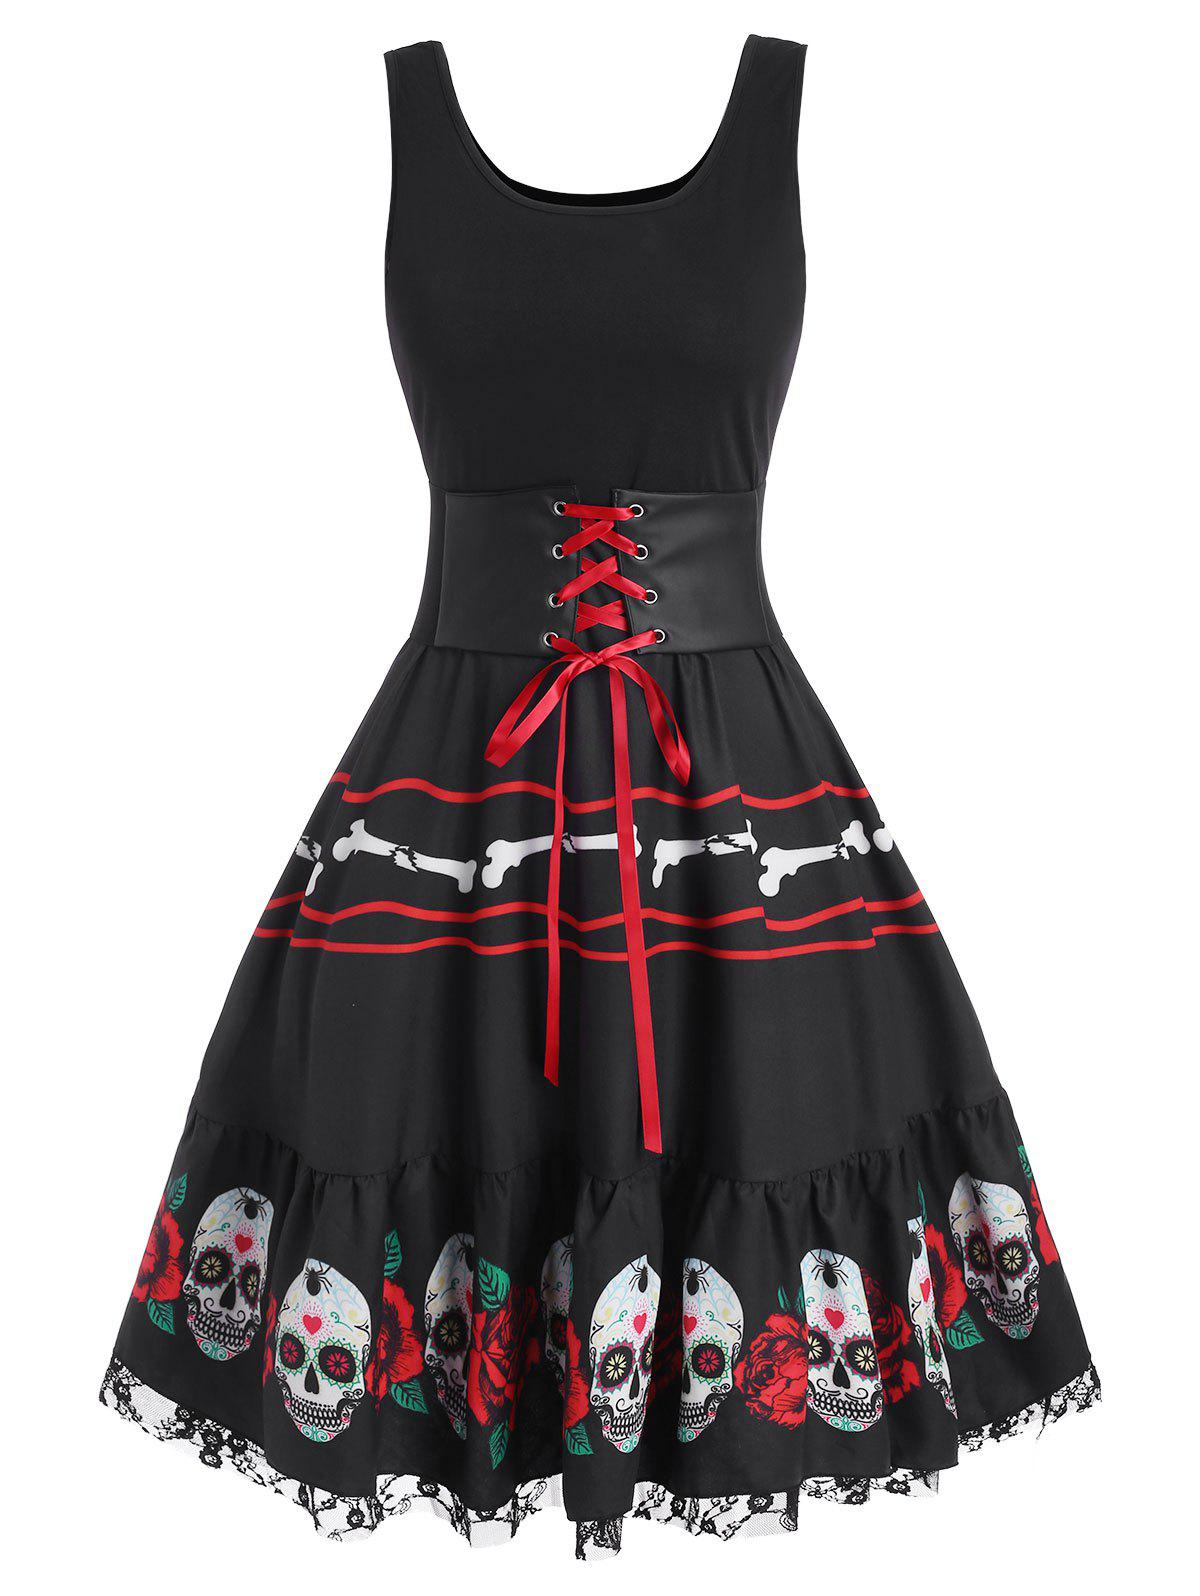 Shop Halloween Skull Flower Corset Lace Panel Dress